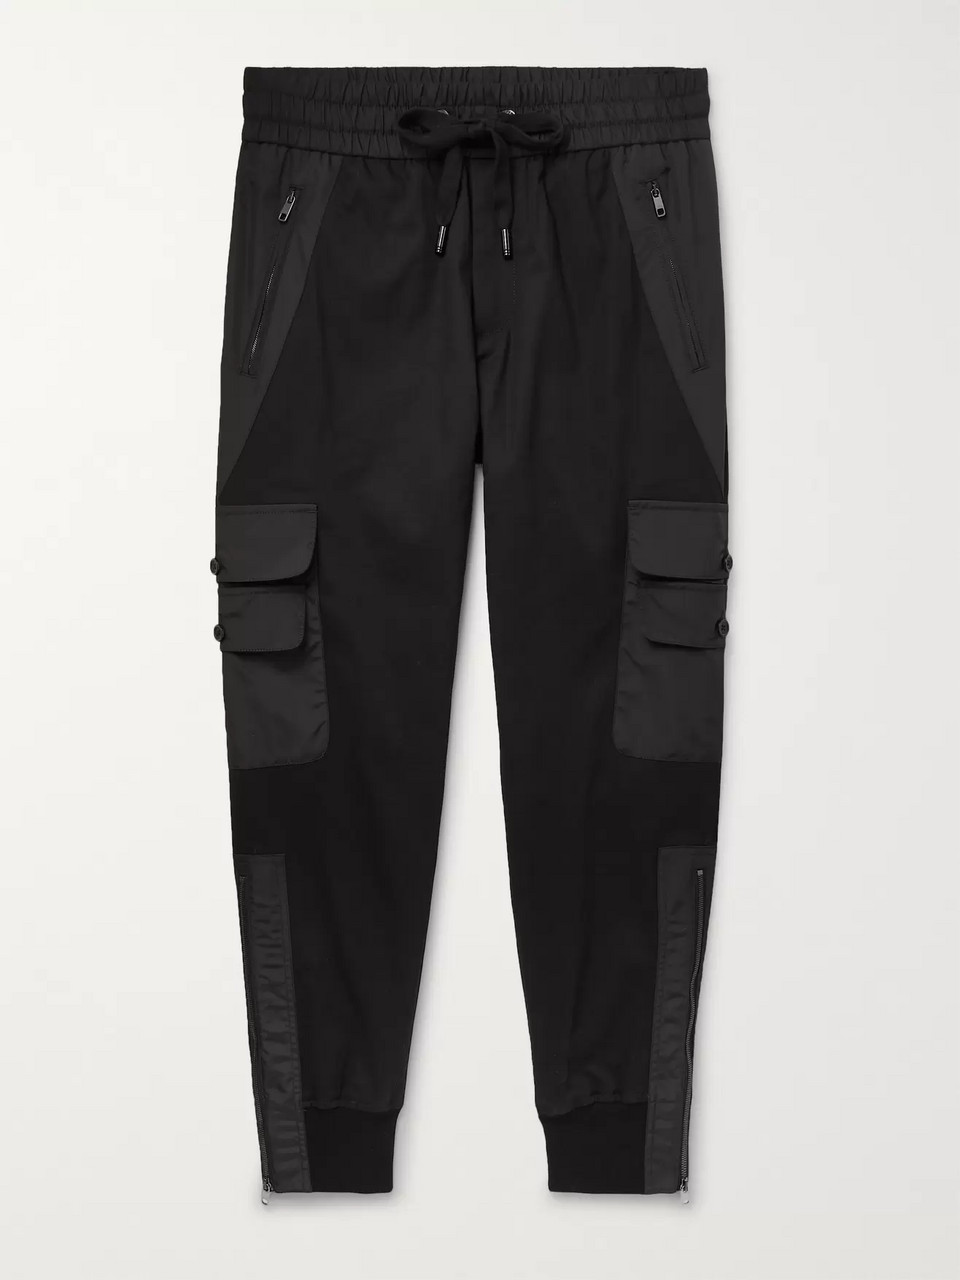 Dolce & Gabbana Black Tapered Gabardine Panelled Cotton-Blend Twill Drawstring Trousers